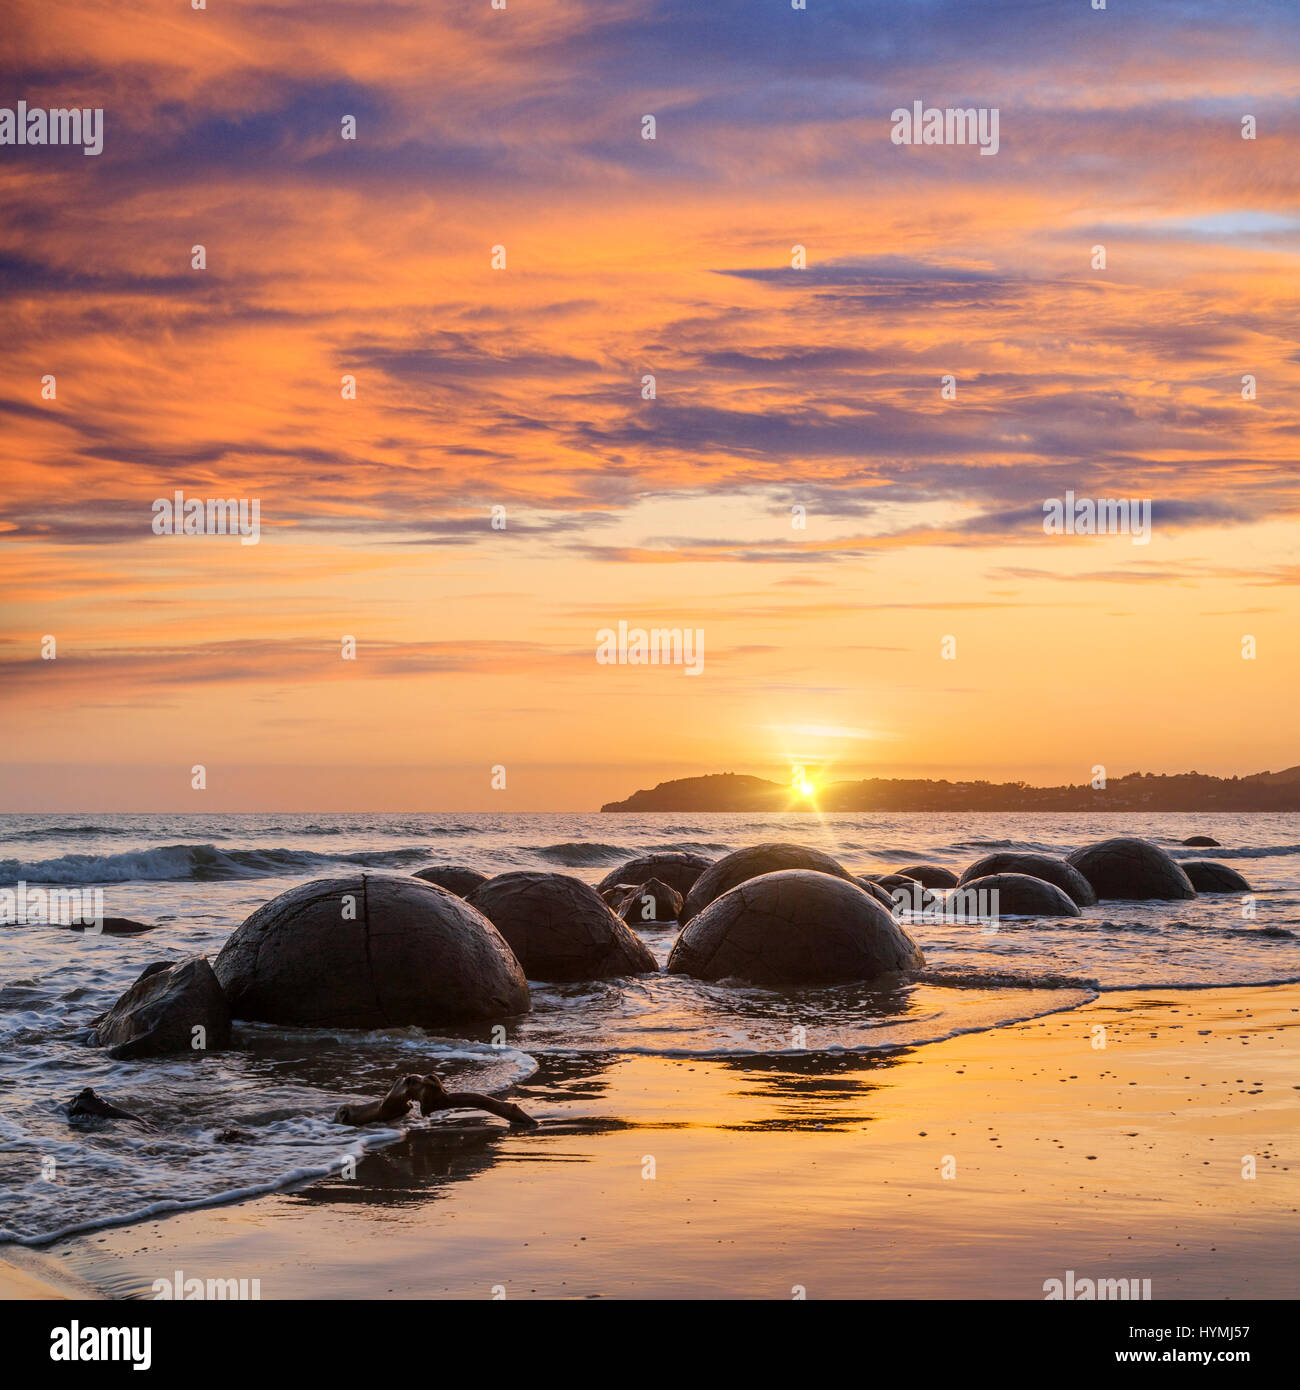 Sunrise at Moeraki Boulders, Otago, a major tourist attraction in the South Island of New Zealand. - Stock Image